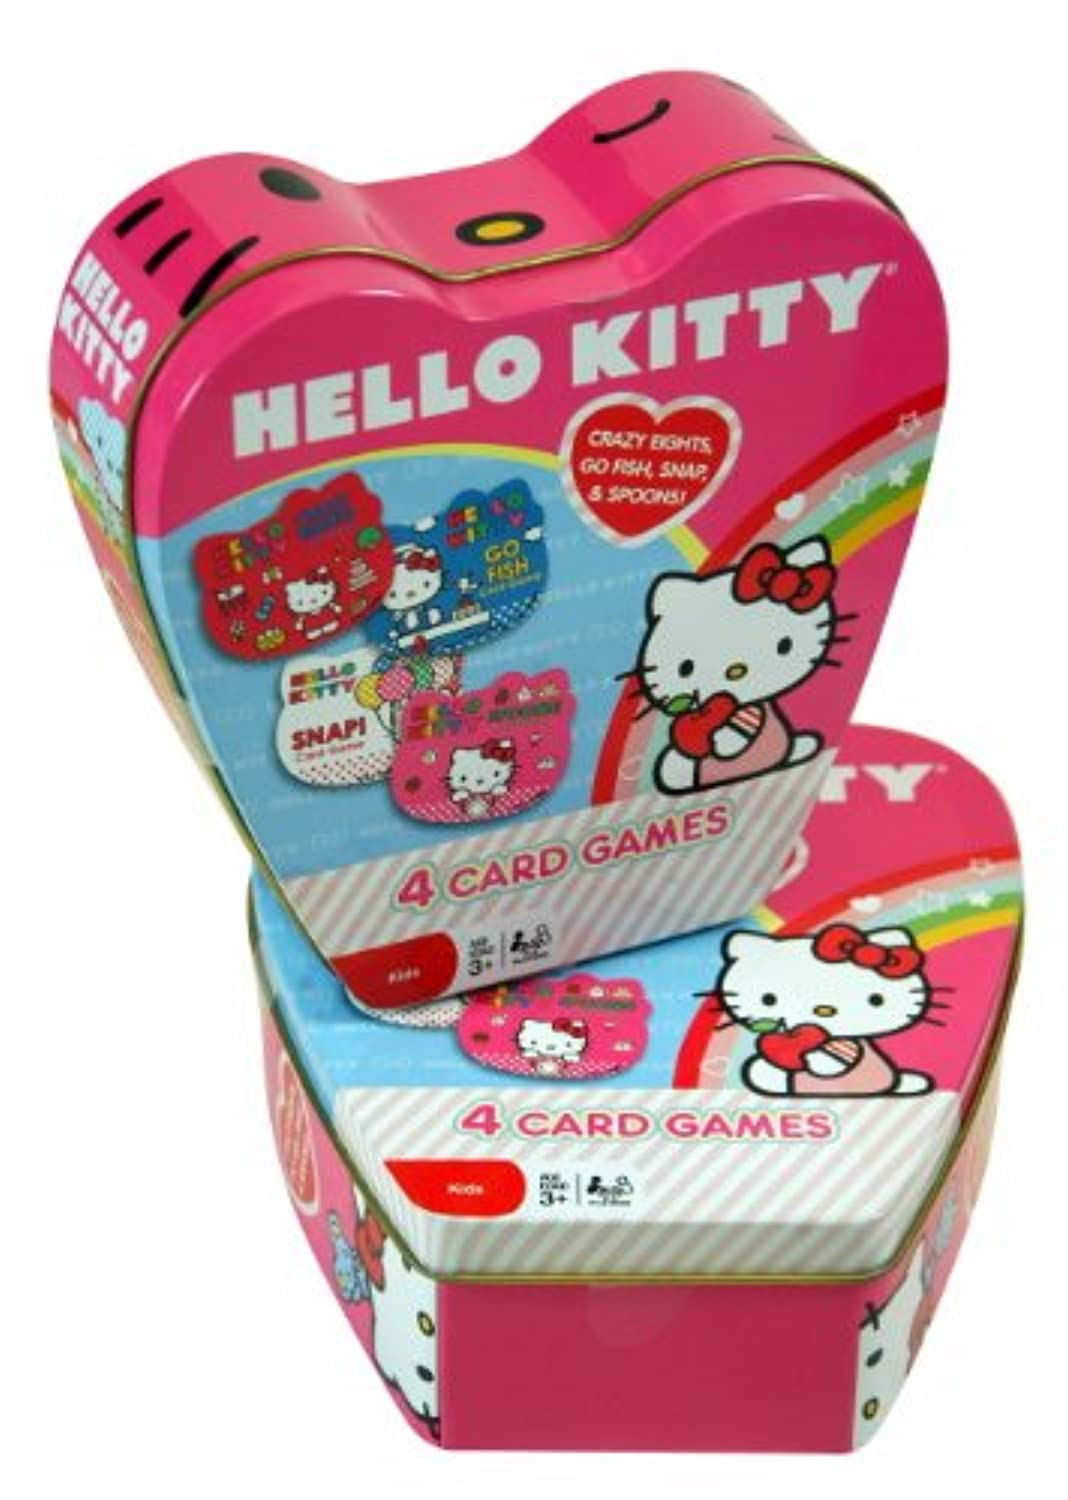 Back to School Super Saving - Sanrio Hello Kitty Tin Box with 4 Card Games (Crazy 8, SNAPI, Spoons, Go Fish) and Hello